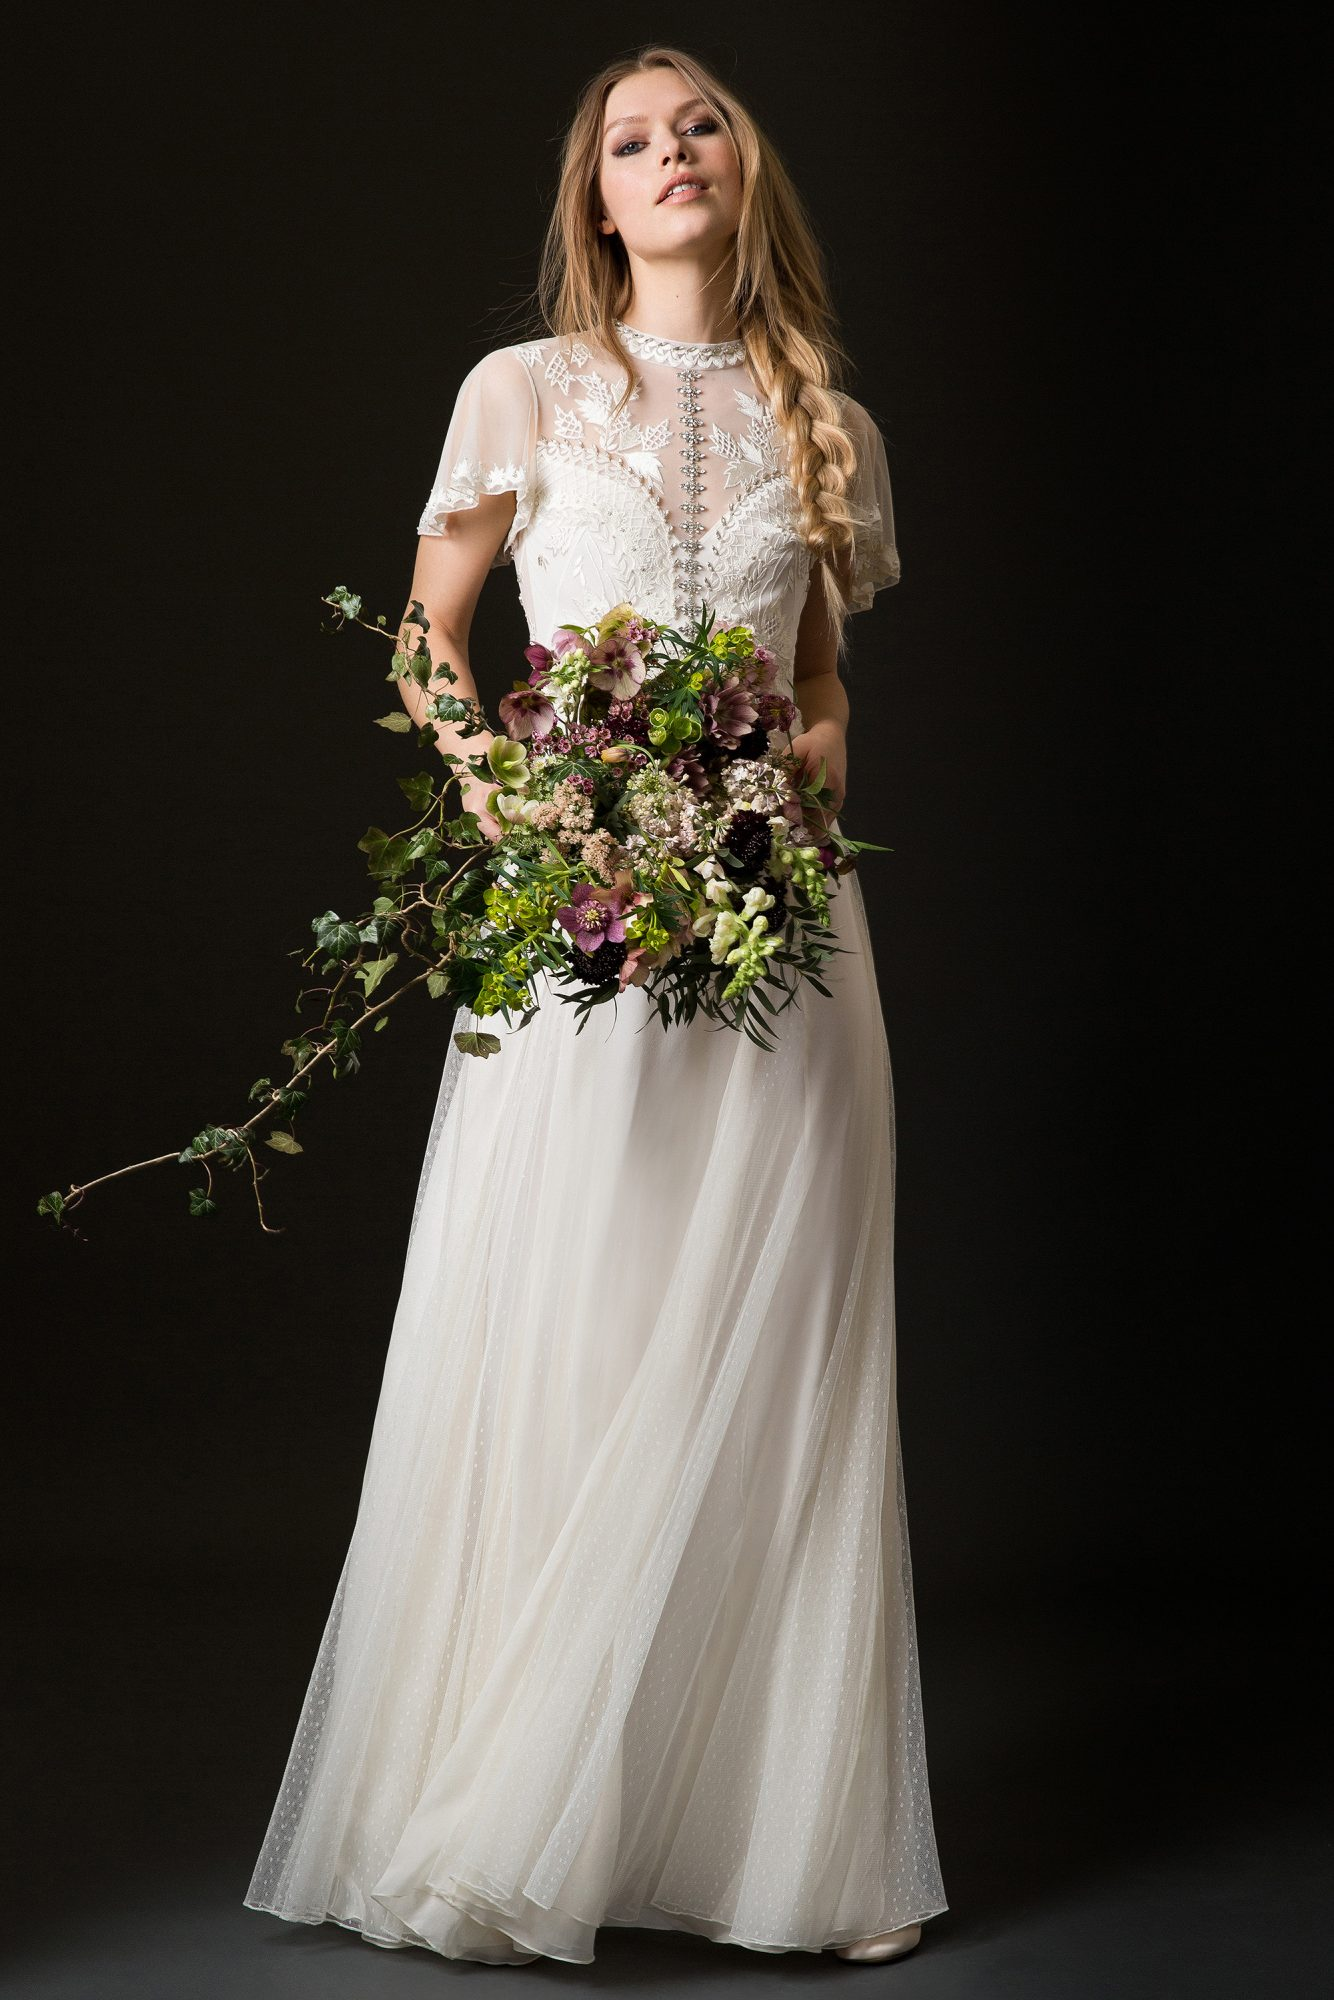 temperley wedding dress spring 2019 sheath with high neck and short lace sleeves